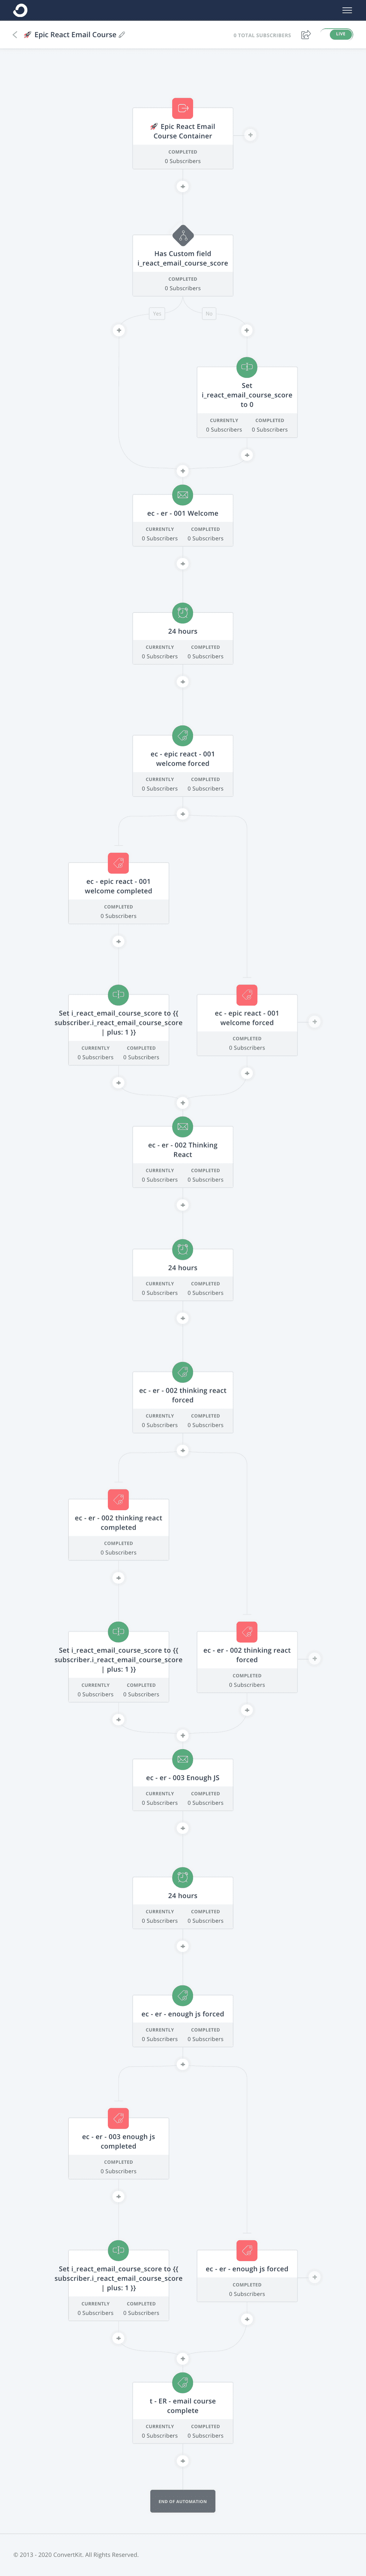 screenshot of a convertkit automation of a self-paced email course